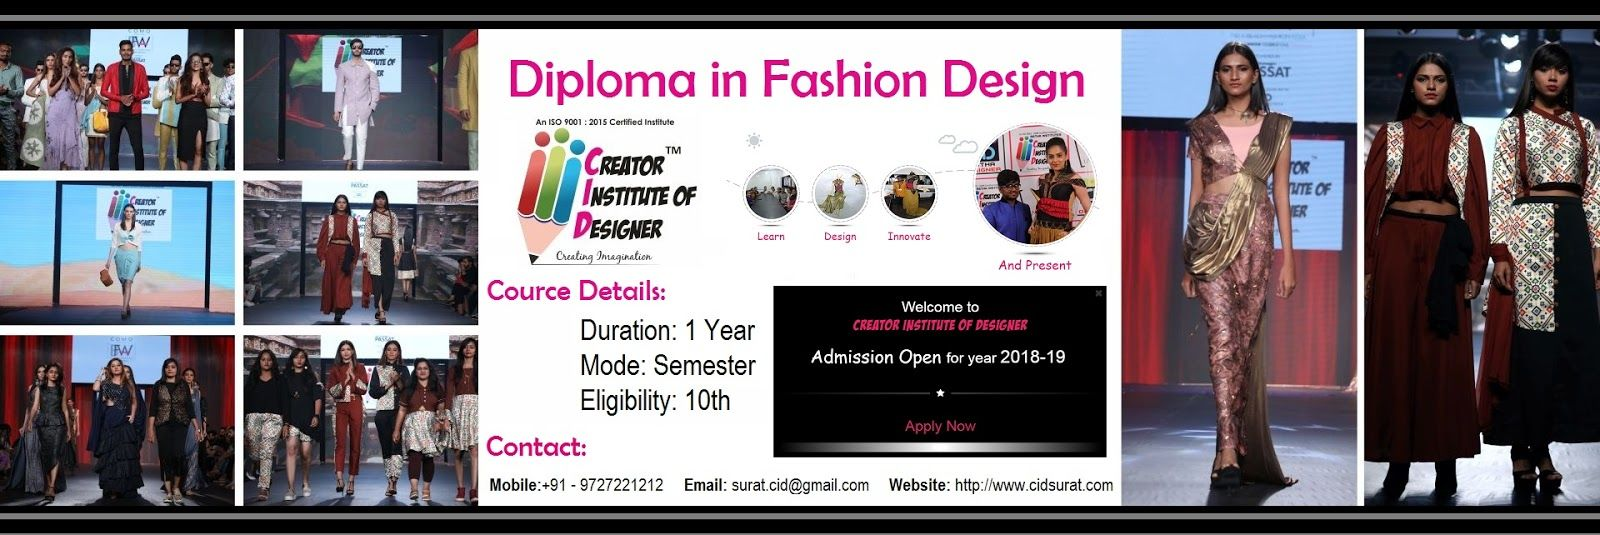 Are You Ready to Become a Fashion Designer?